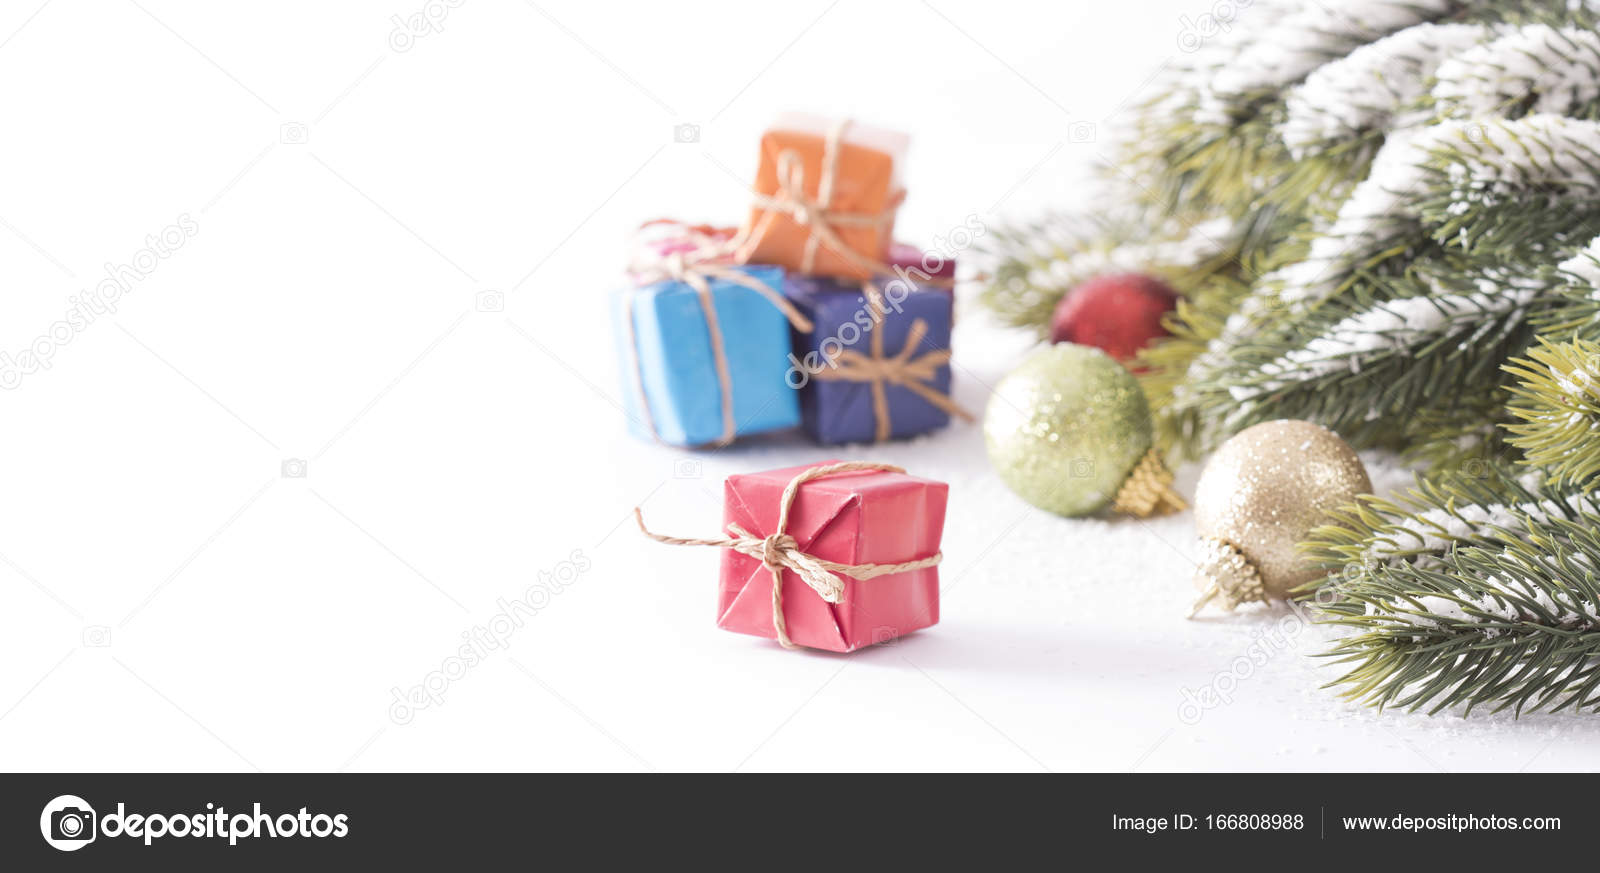 Christmas Gift Packages.Snowy Christmas Tree And Gift Packages Background Stock